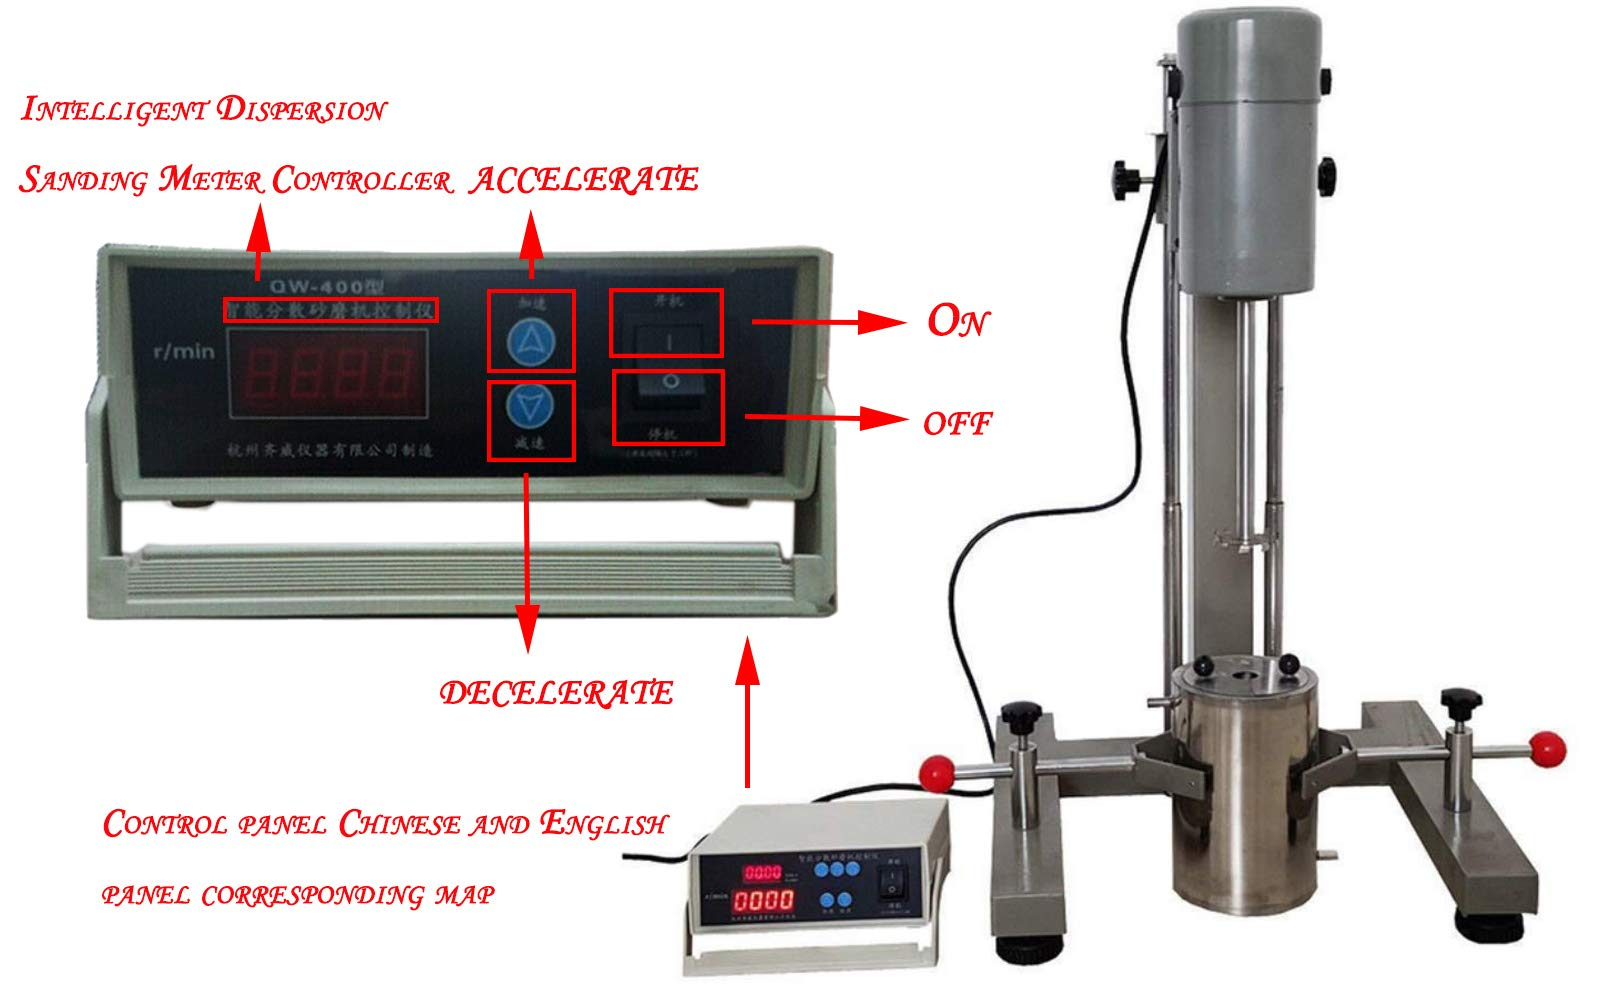 VTSYIQI High Speed Digital Laboratory Disperser Mixer Lab Homogeneous Dispersing Machine emulsifying Mixer with Motor Power 400W FS-400D for Disperse and homogenize Testing by VTSYIQI (Image #1)